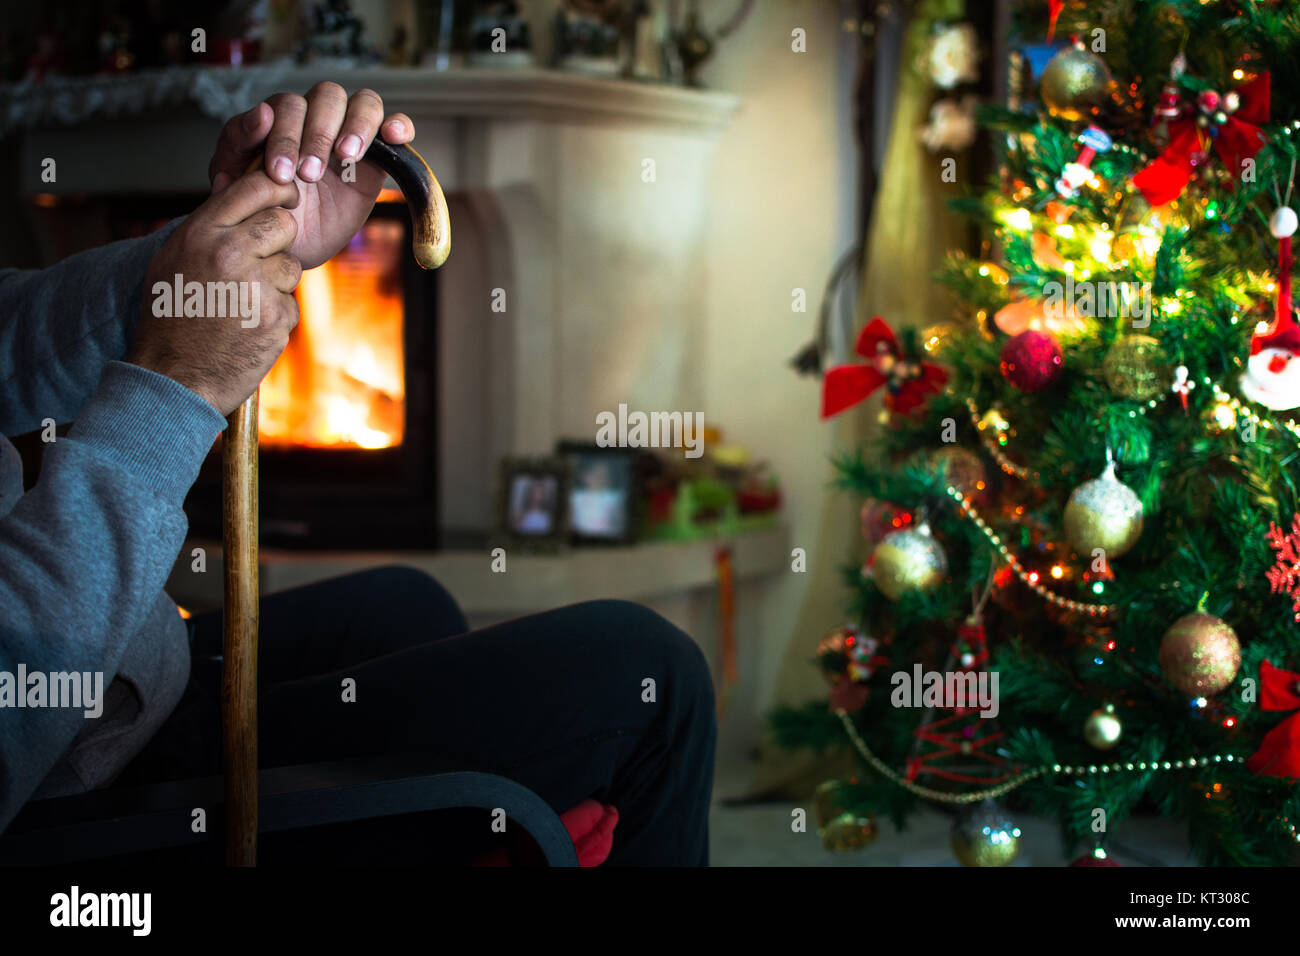 Lonely Christmas.Lonely Christmas Alone Loneliness Stock Photos Lonely